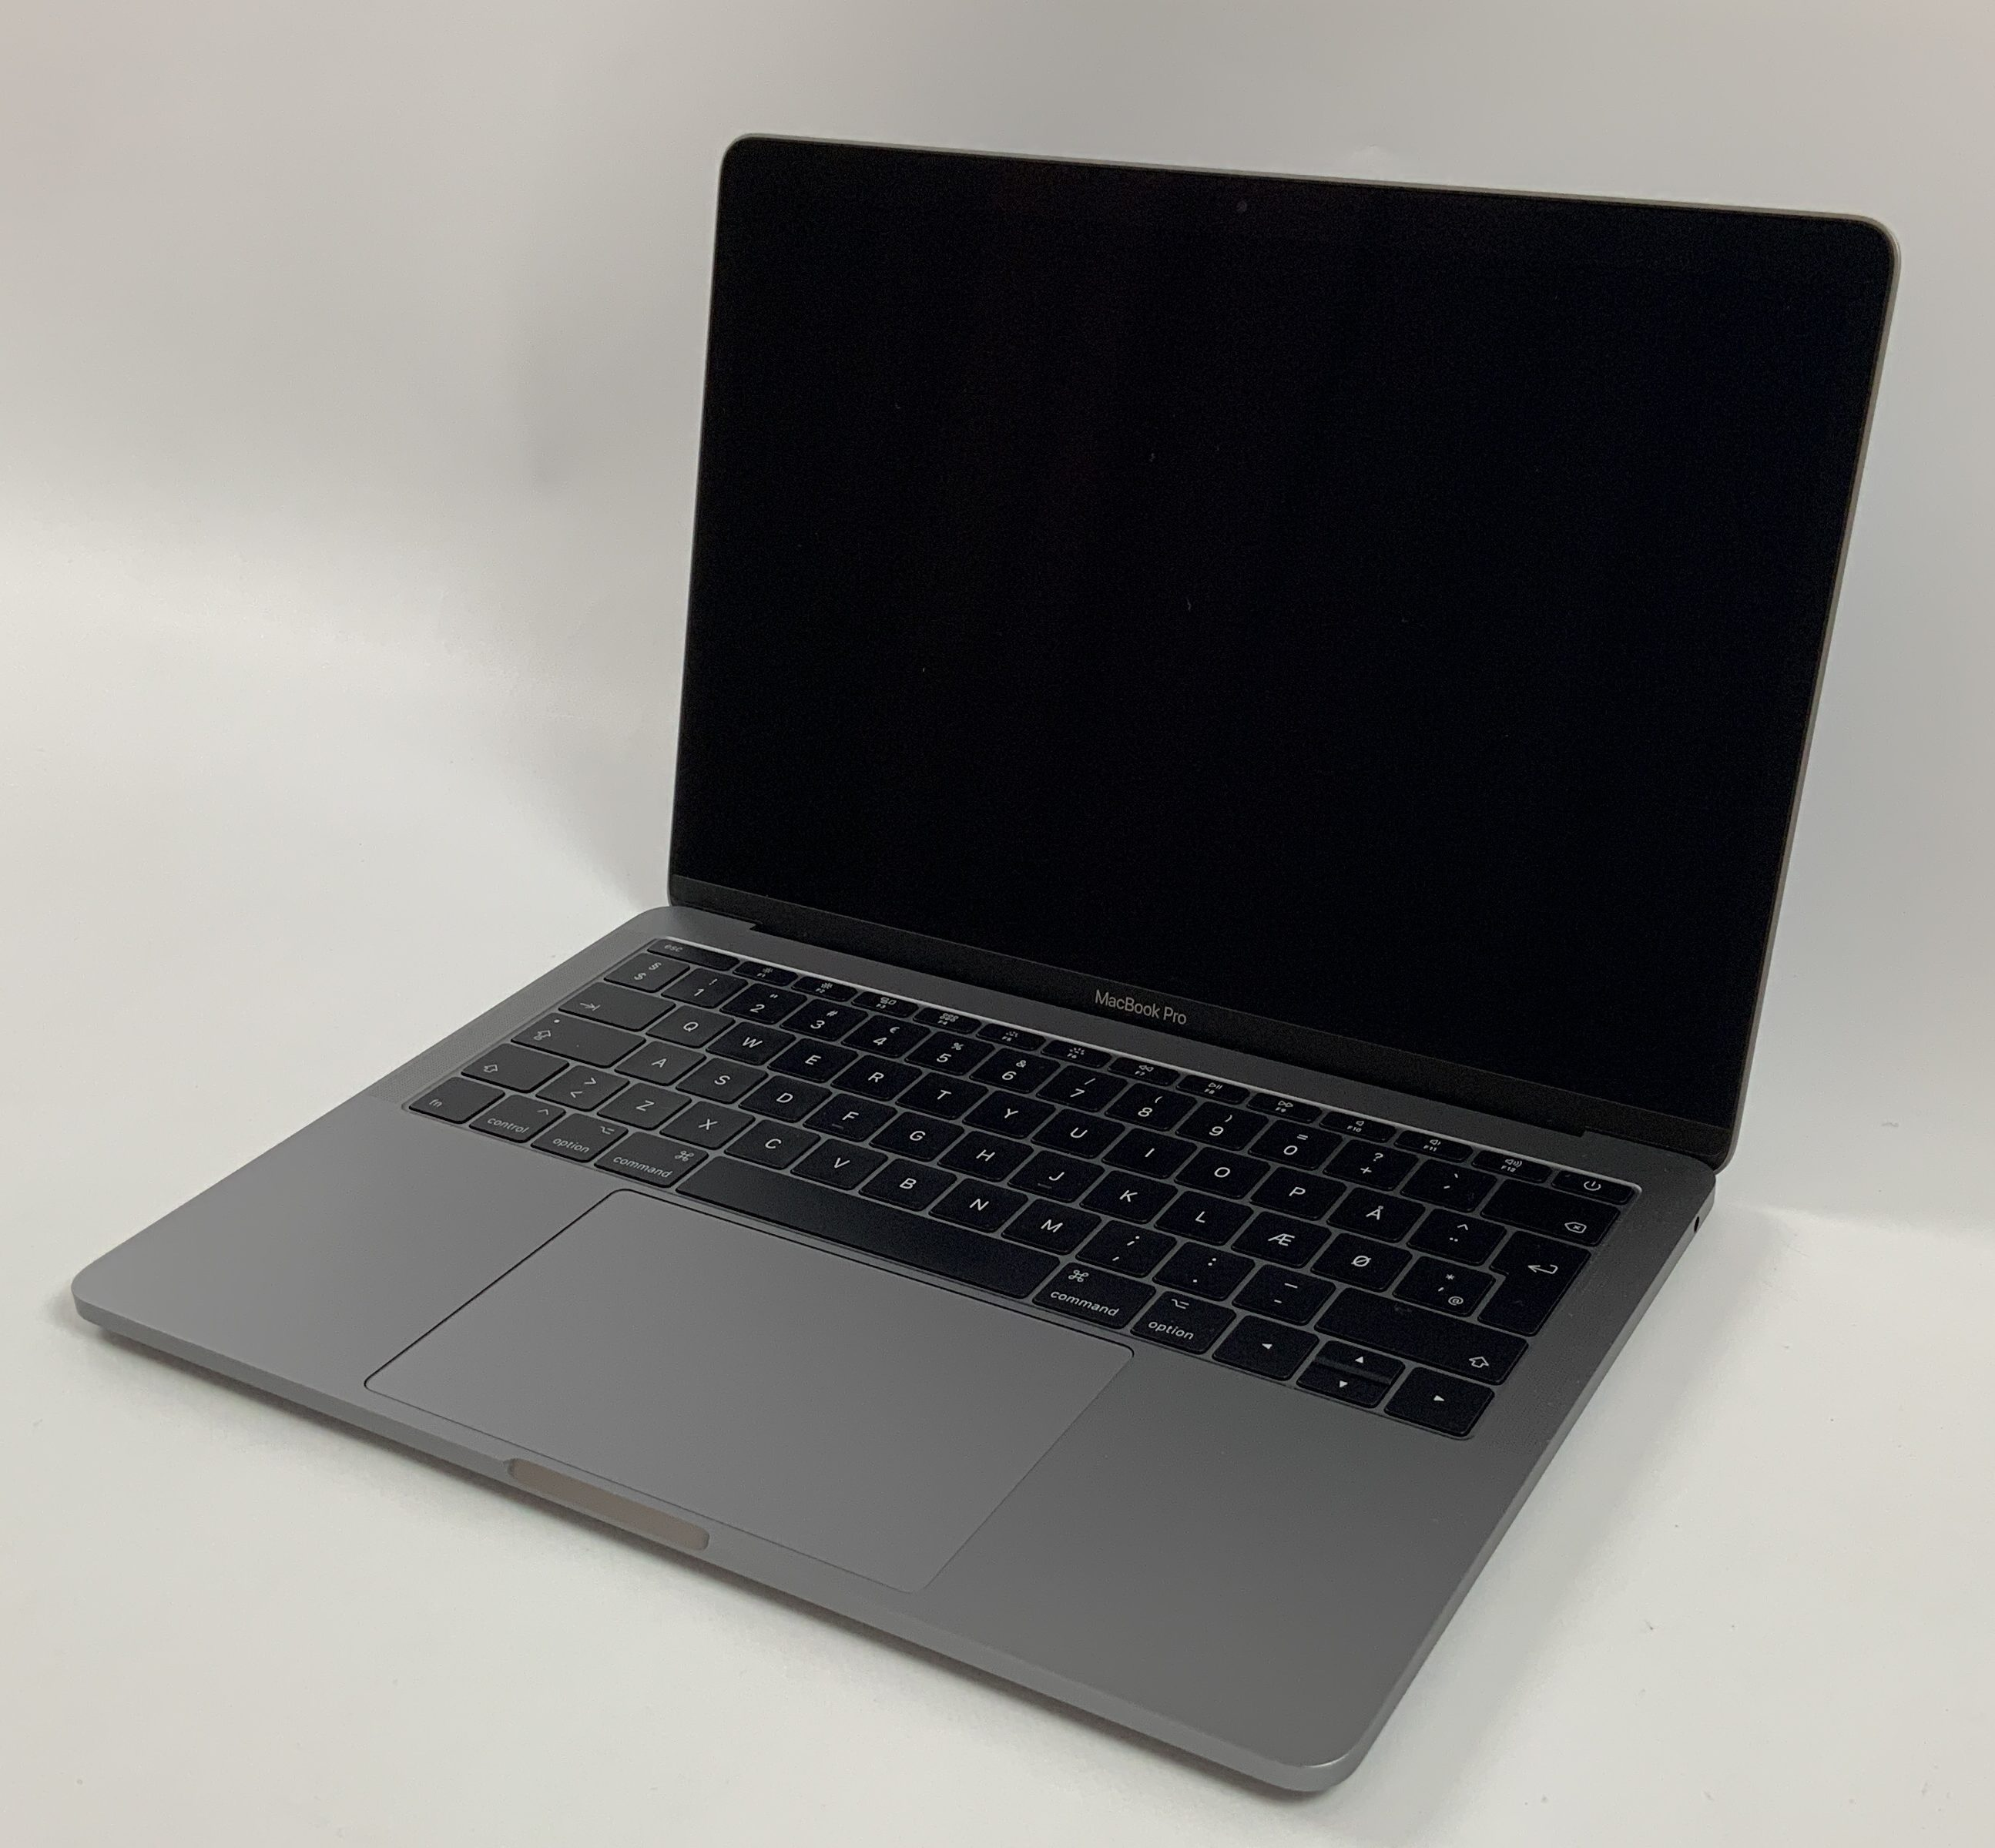 "MacBook Pro 13"" 2TBT Mid 2017 (Intel Core i5 2.3 GHz 8 GB RAM 128 GB SSD), Space Gray, Intel Core i5 2.3 GHz, 8 GB RAM, 128 GB SSD, image 1"